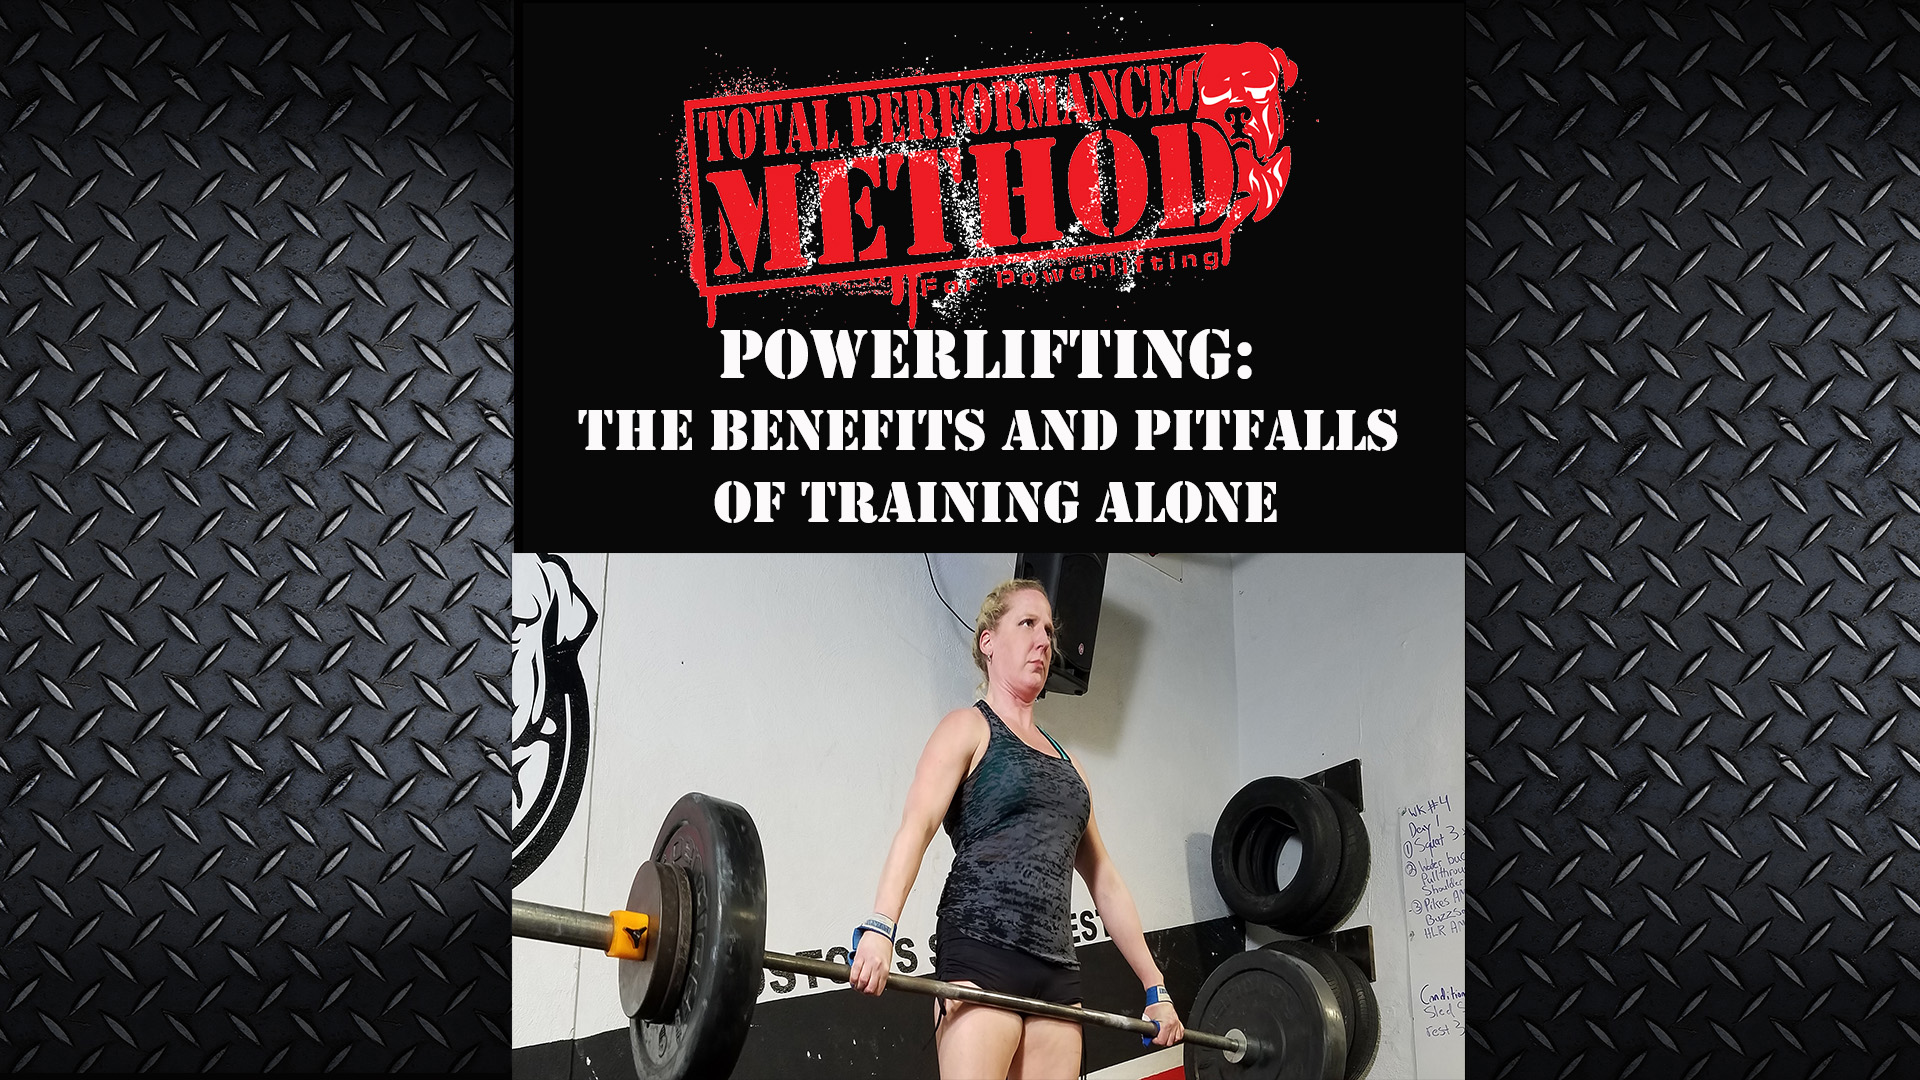 powerlifting, benefits, training alone, pitfalls, john romanowski